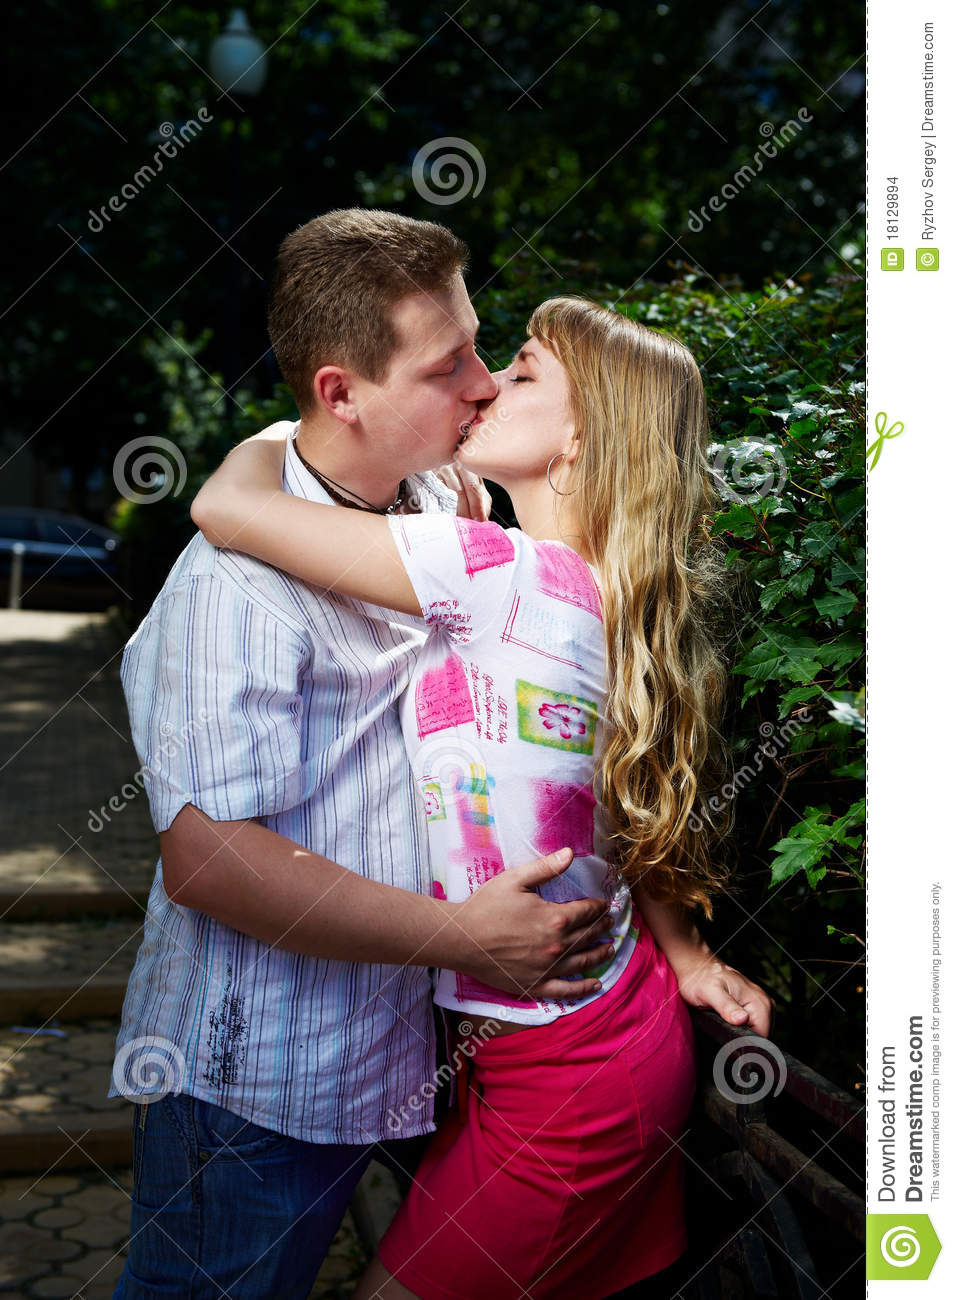 image Romantic couple closeup with a creamy climax